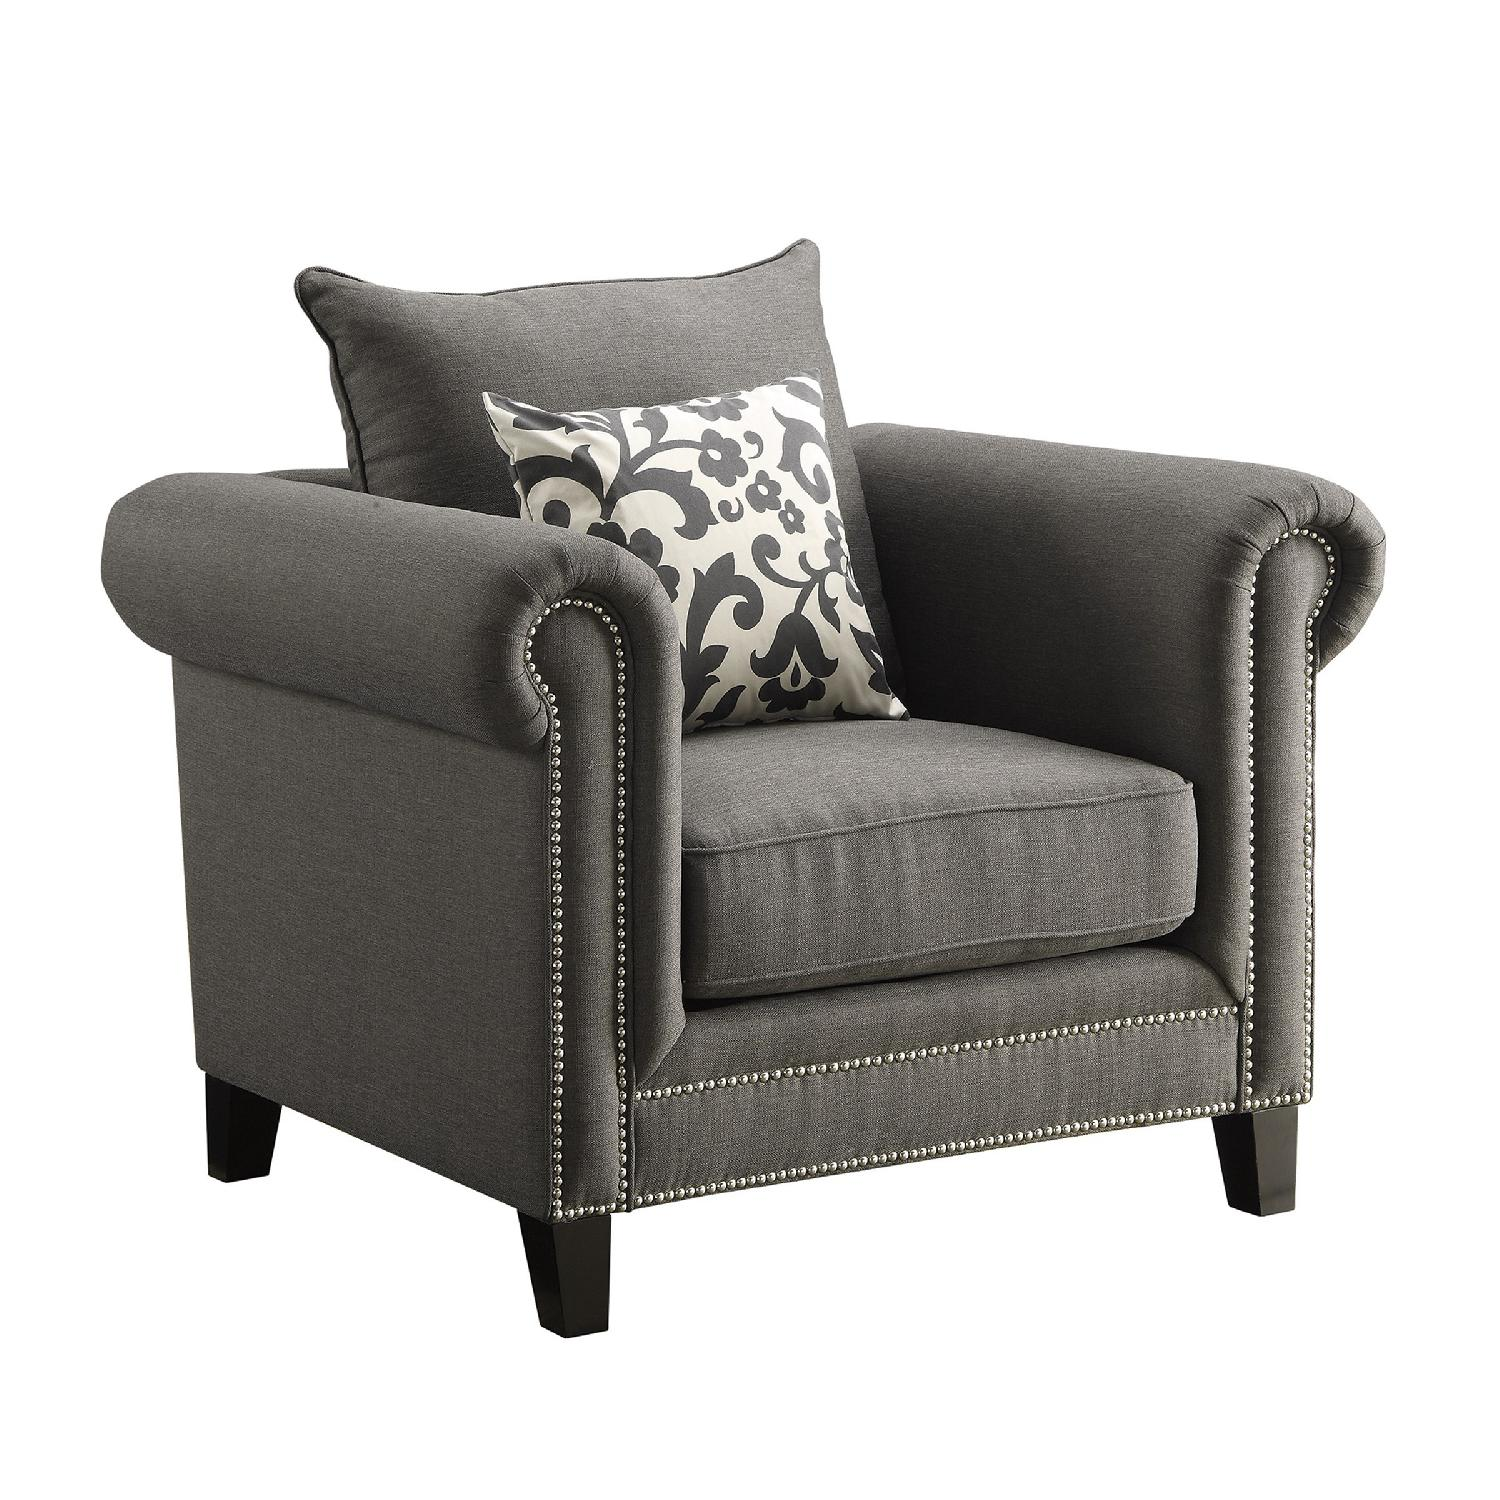 Accent Chair w/ Rolled Arms & Pewter Nailhead Accent in Charcoal Grey Fabric & Accent Pillow